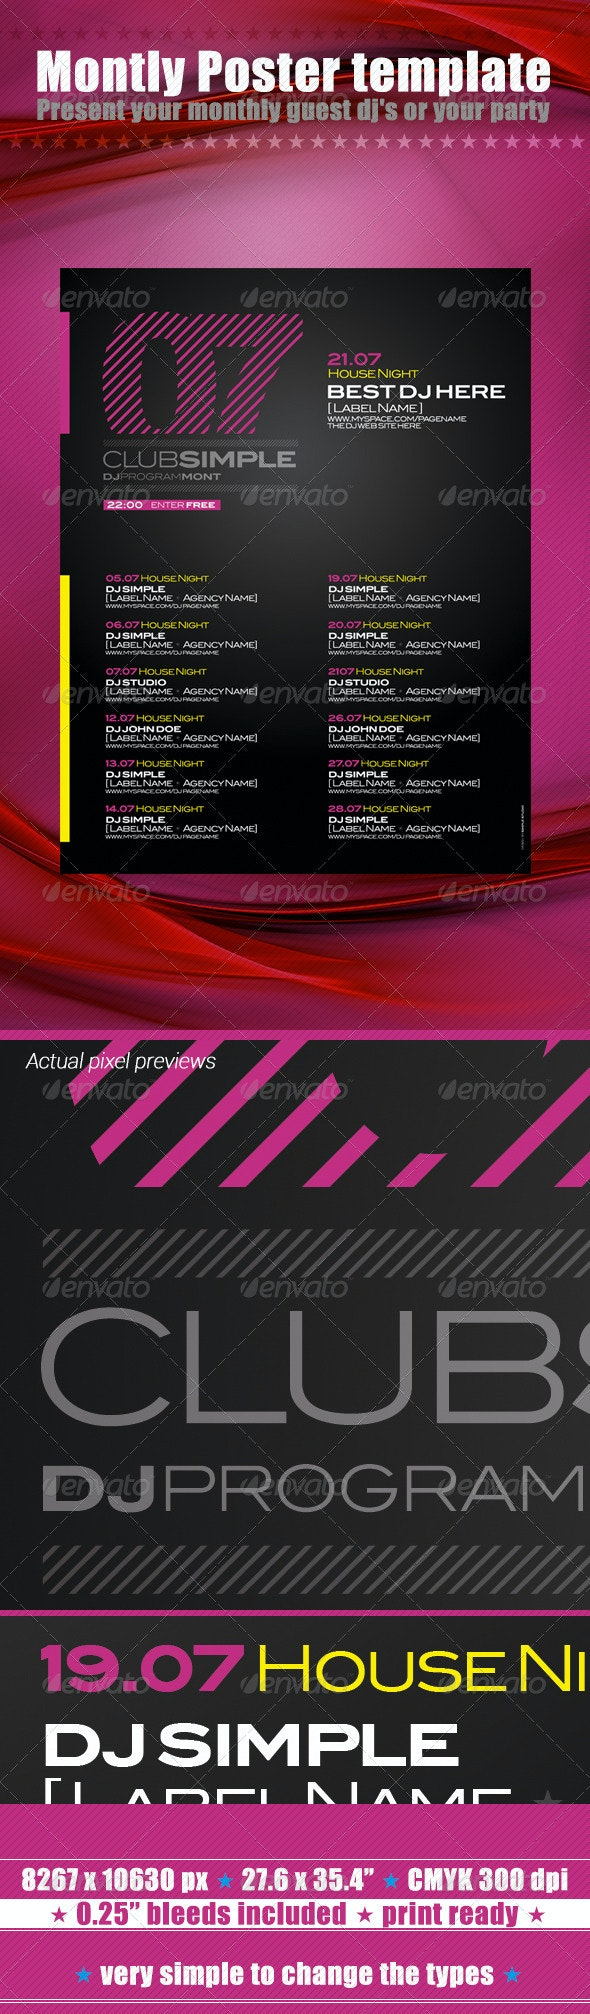 07 Montly Poster Template - Clubs & Parties Events